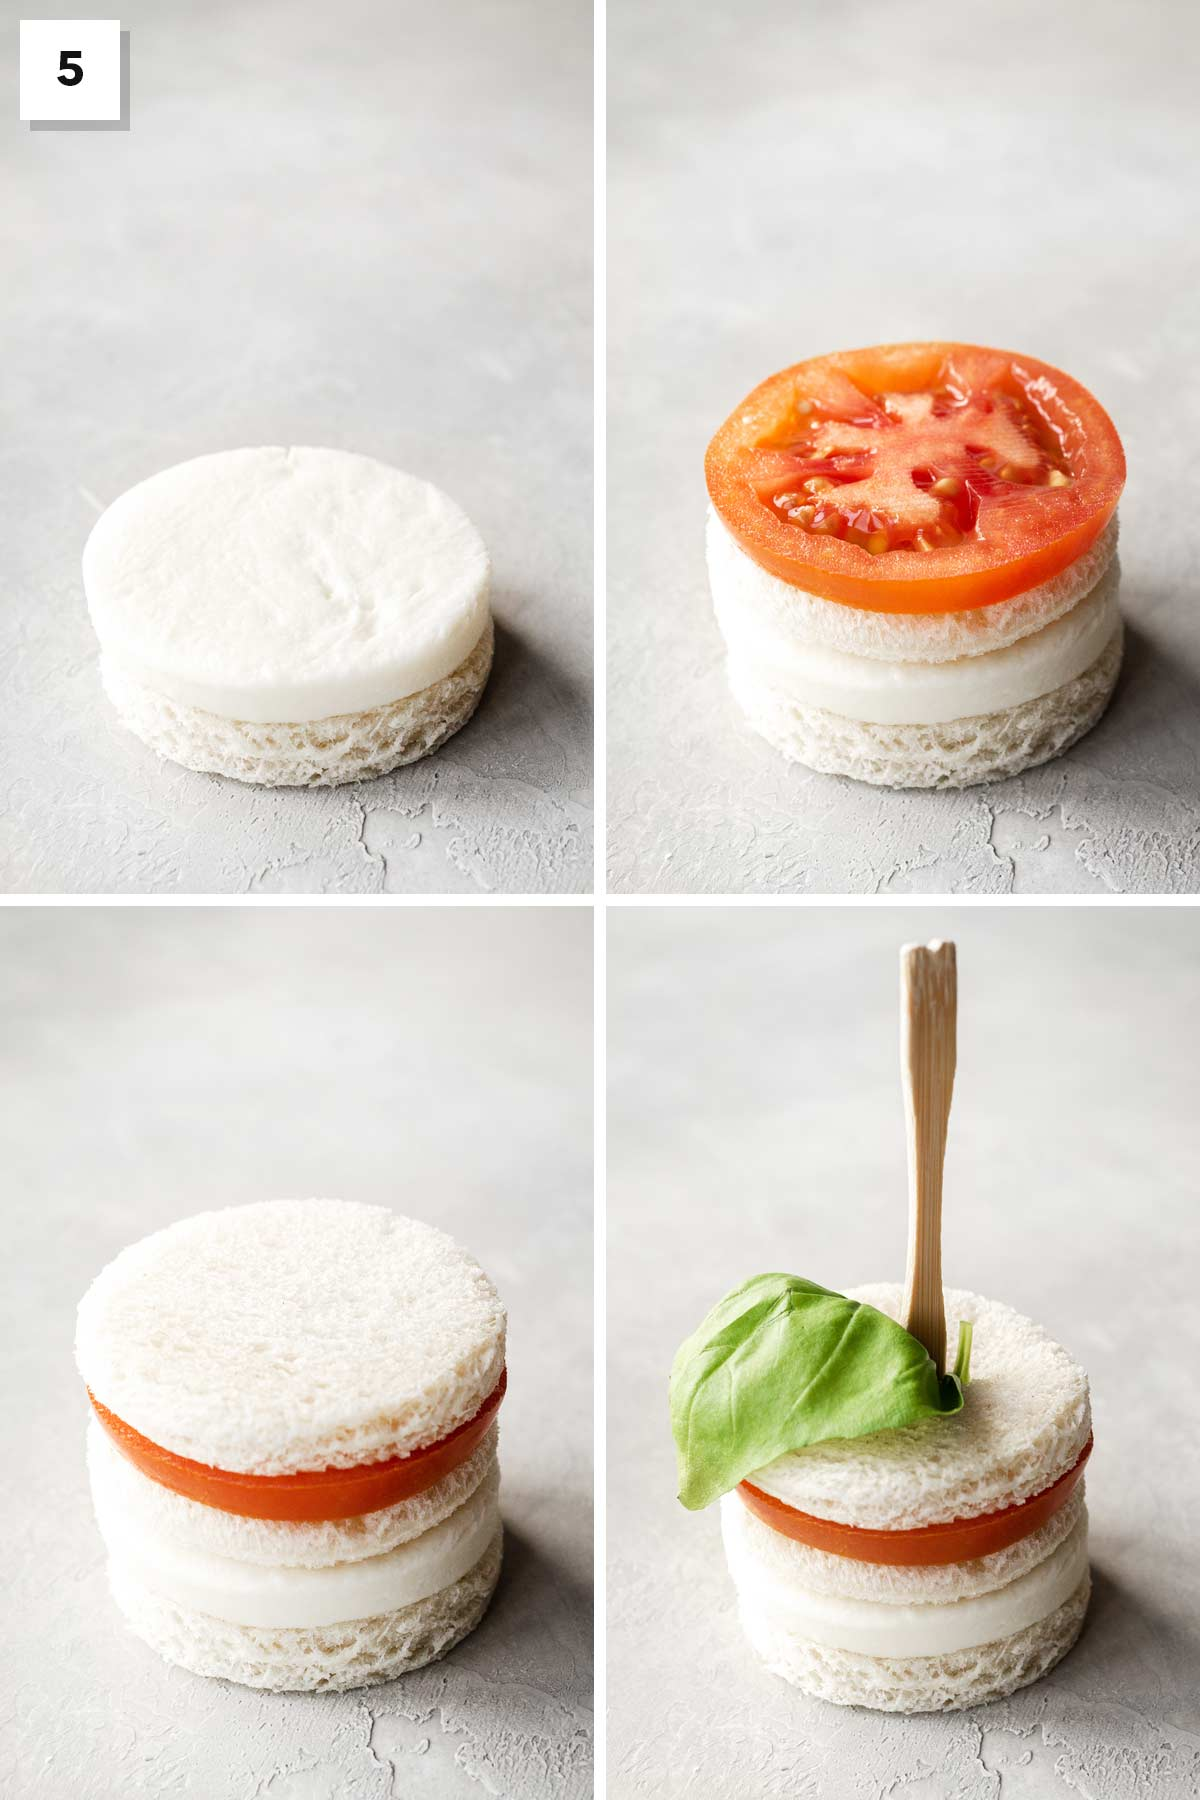 Four steps showing how to stack a mozzarella tea sandwich.